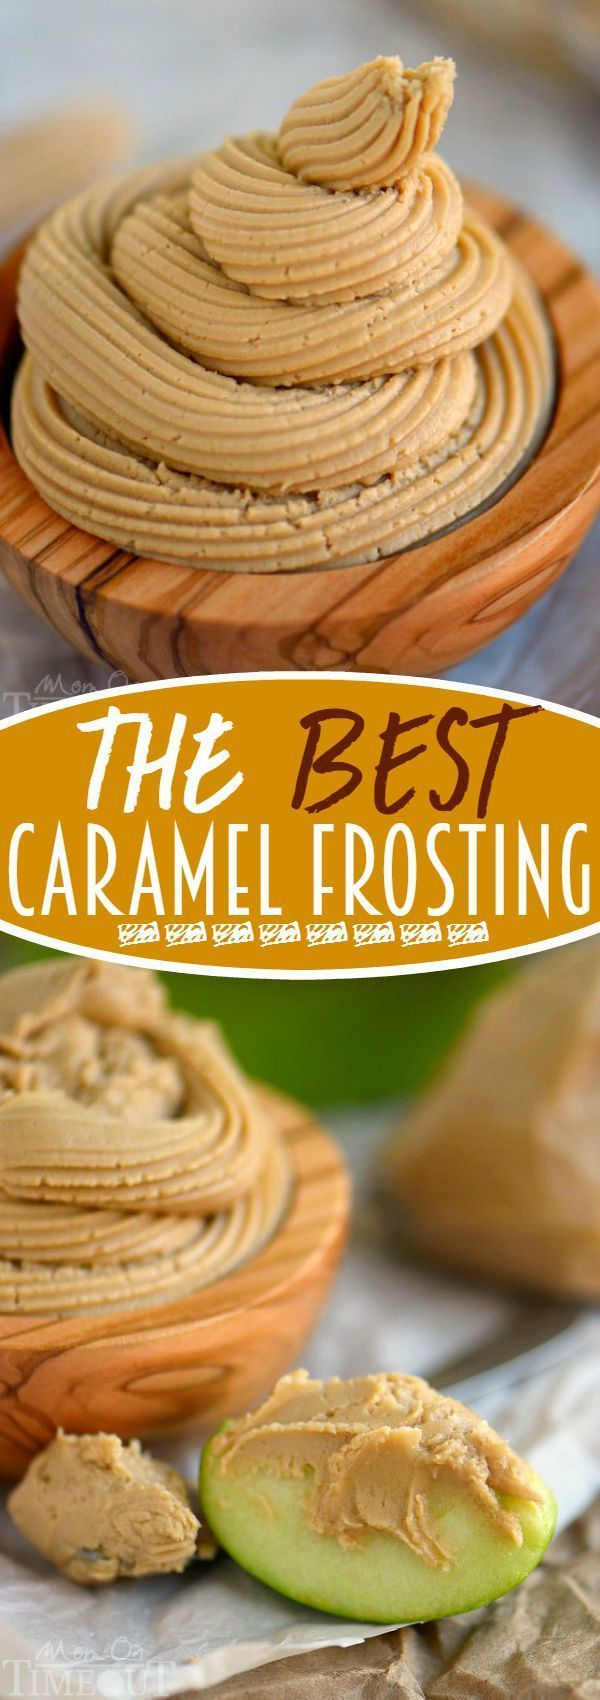 The BEST Caramel Frosting - you're going to want this on everything so go ahead and DOUBLE the recipe! Perfect for cakes, cupcakes, bread, apples and more! | eBay (scheduled via http://www.tailwindapp.com?utm_source=pinterest&utm_medium=twpin&utm_content=post55702708&utm_campaign=scheduler_attribution)